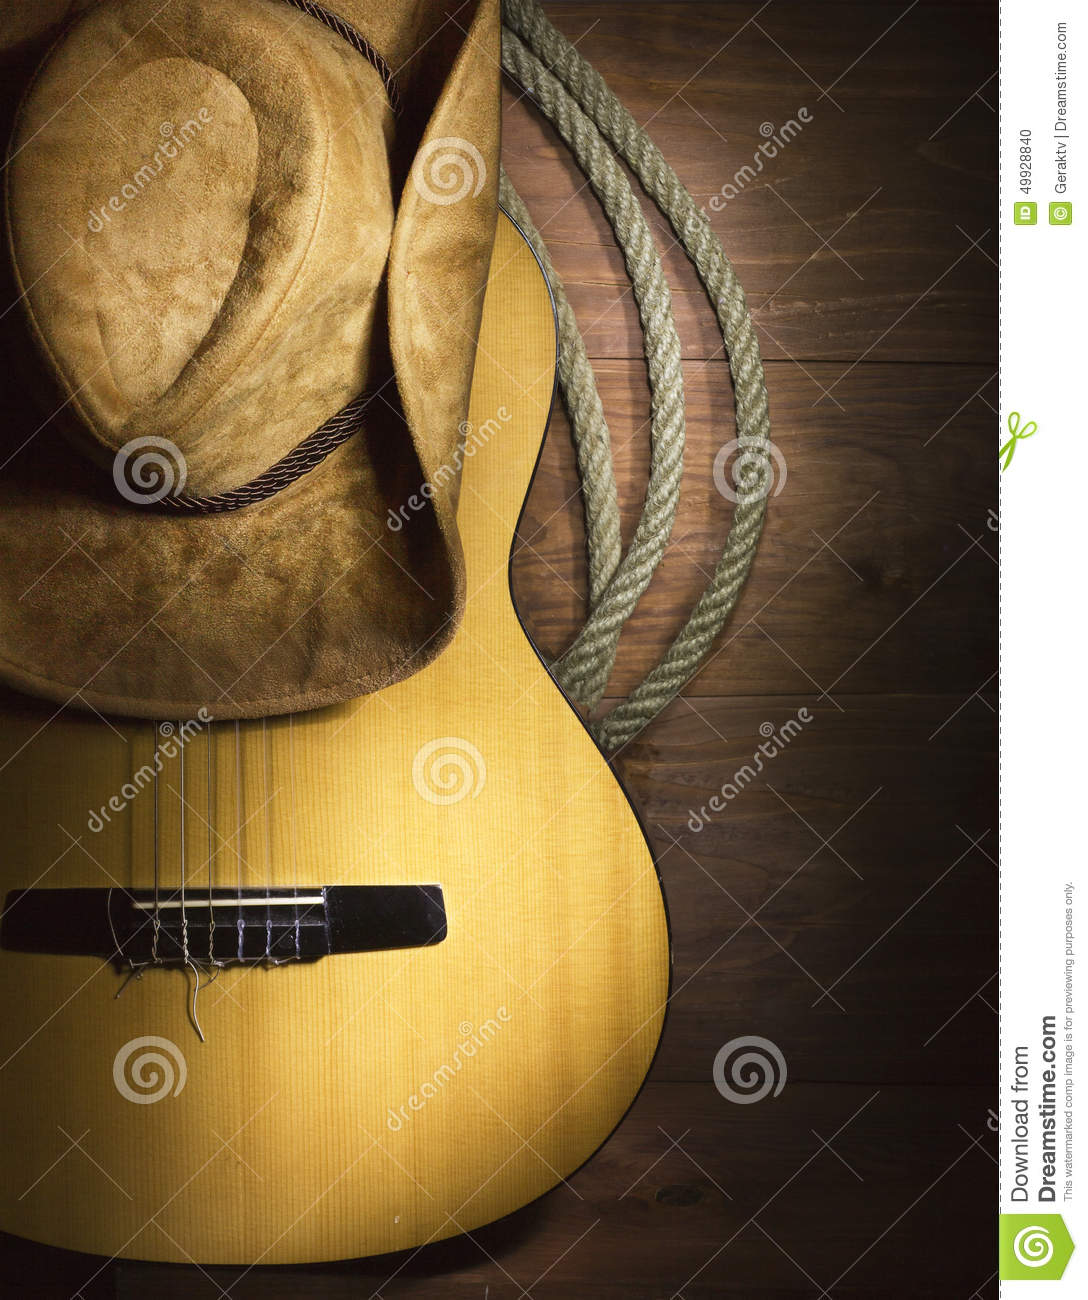 Country Music Wallpaper: Country Music With Guitar On Wood Background Stock Photo